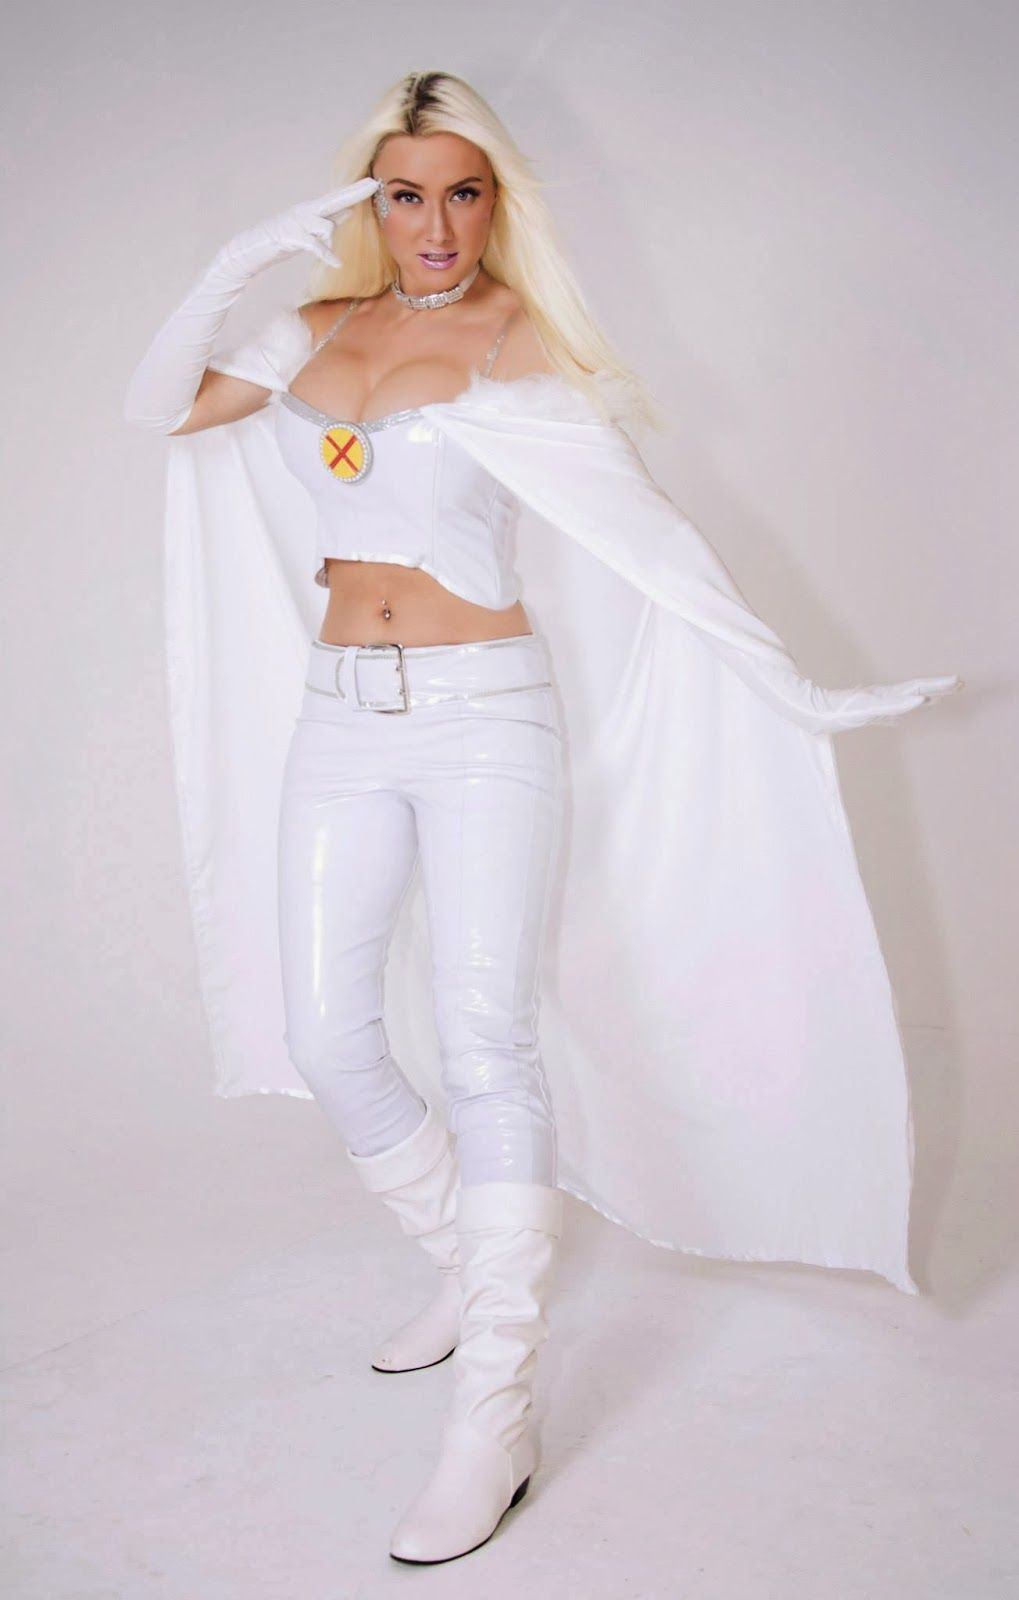 emma frost hot pictures